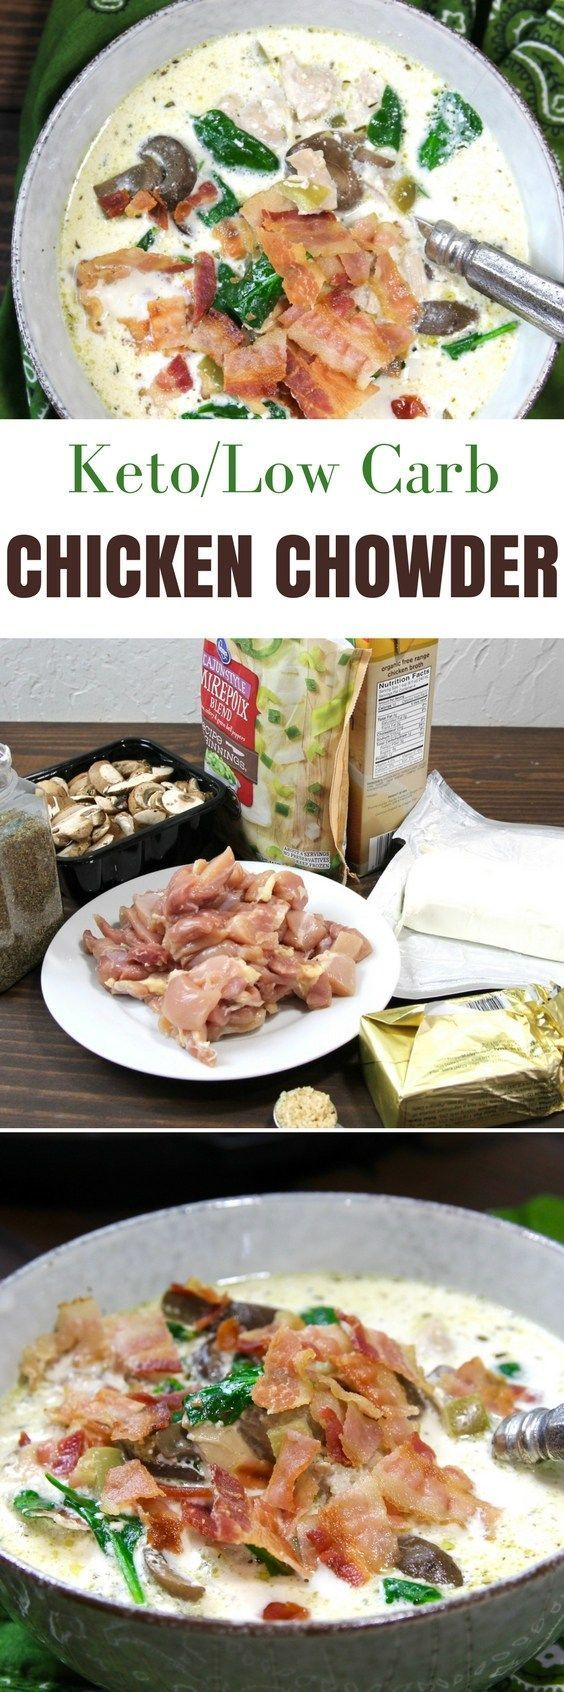 Keto Instant Pot Chicken Bacon Chowder | http://5dinners1hour.com/keto-instant-pot-chicken-bacon-chowder/